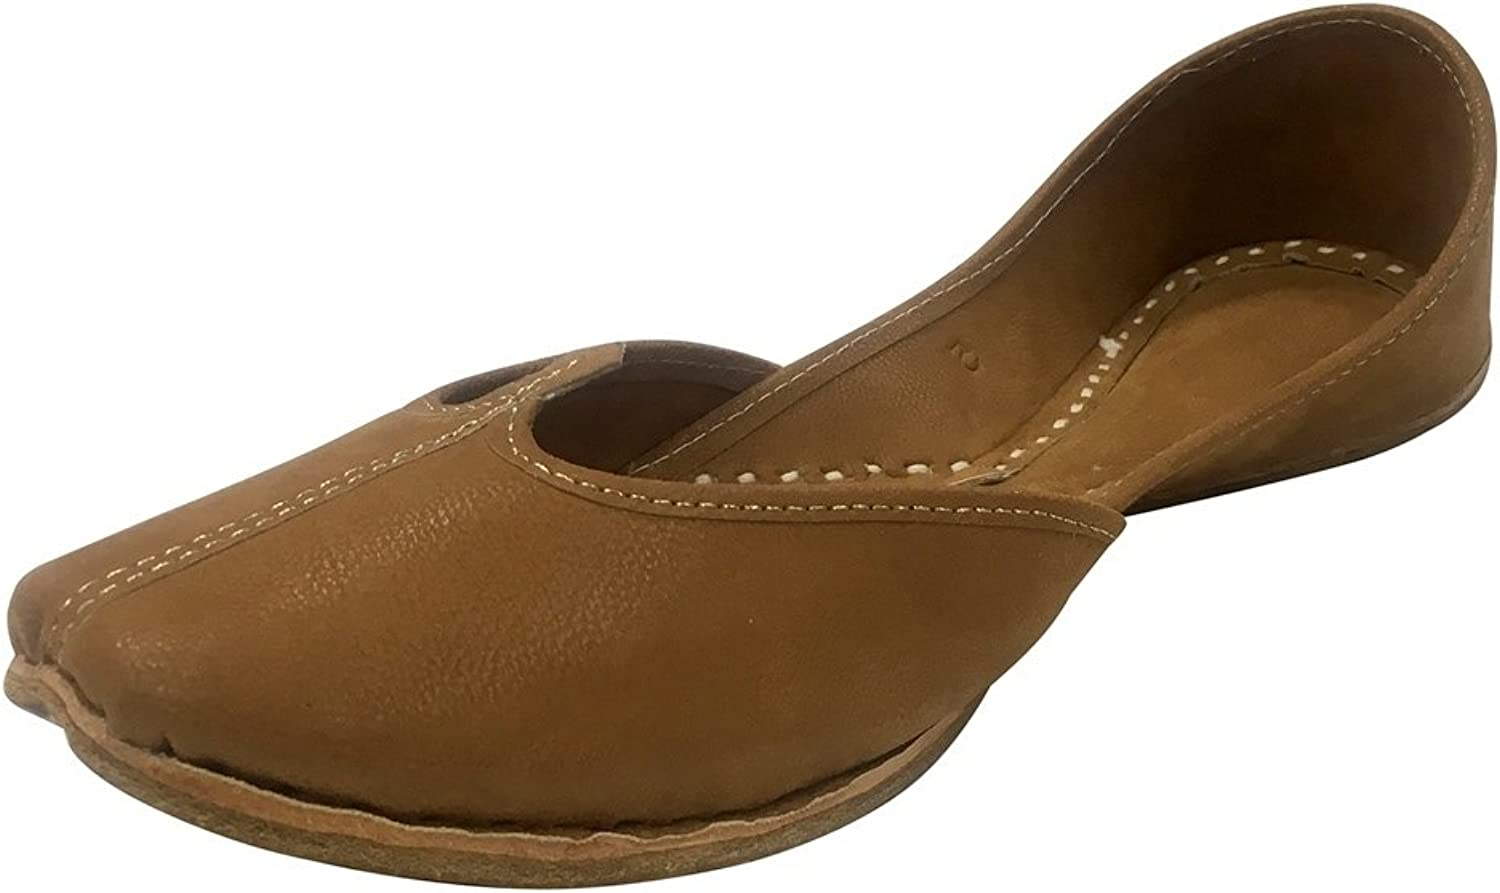 Step n Style Ladies Brown Punjabi Jutti Khussa shoes Ethnic Mojari Flat Ballerina